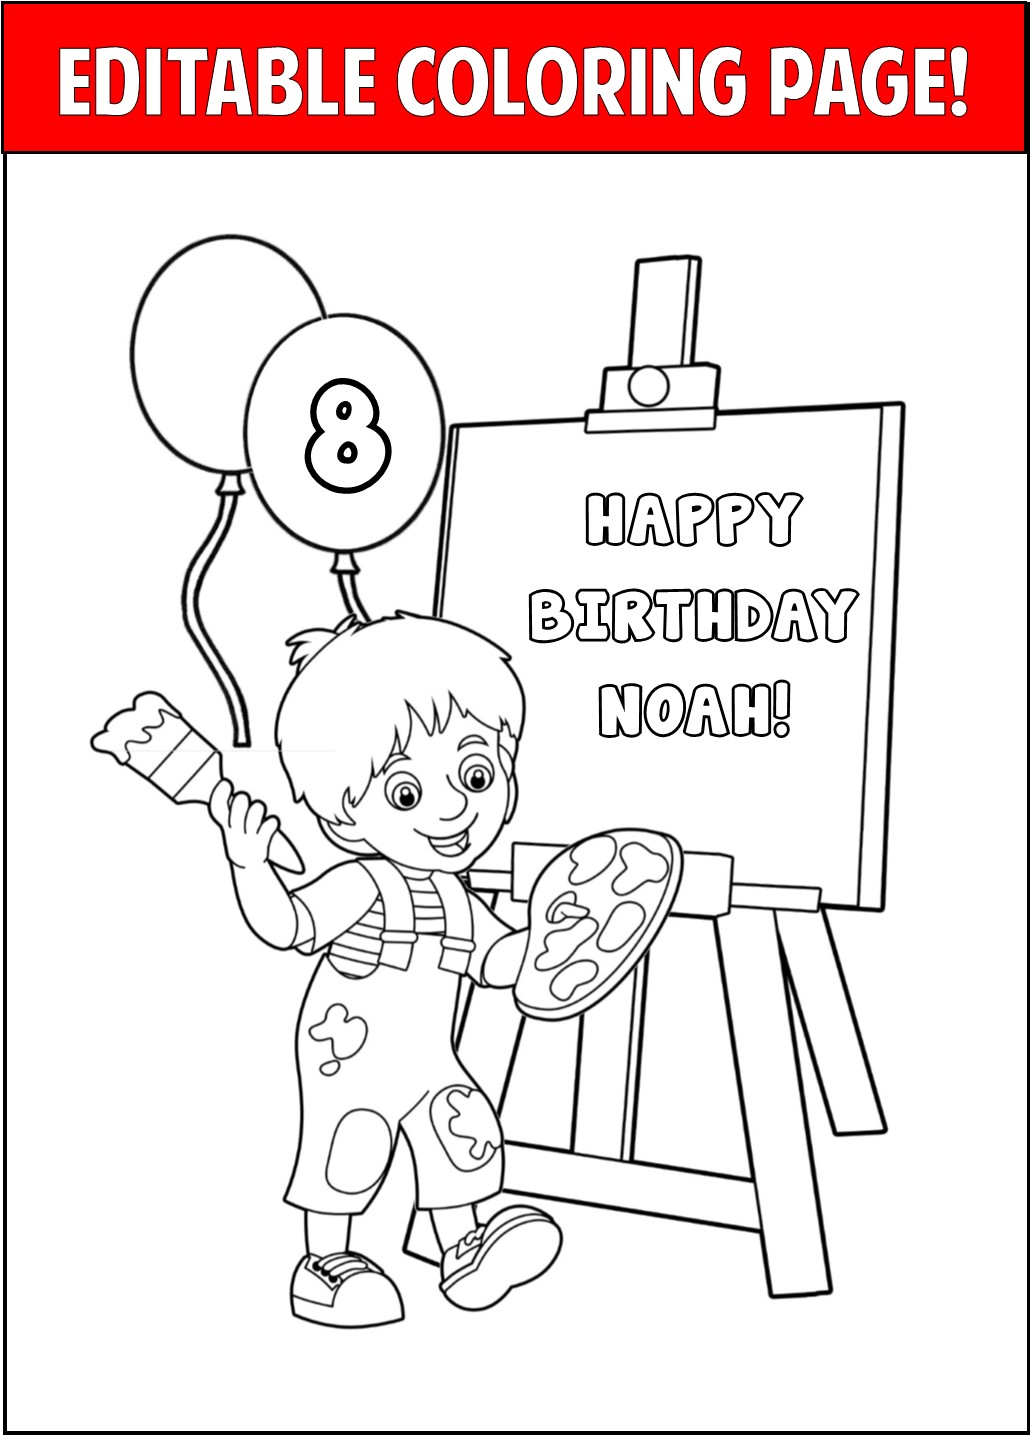 Get Your Party Started With These Adorable Personalized Coloring Pages Perfect For Those Young And At Heart Childs Art